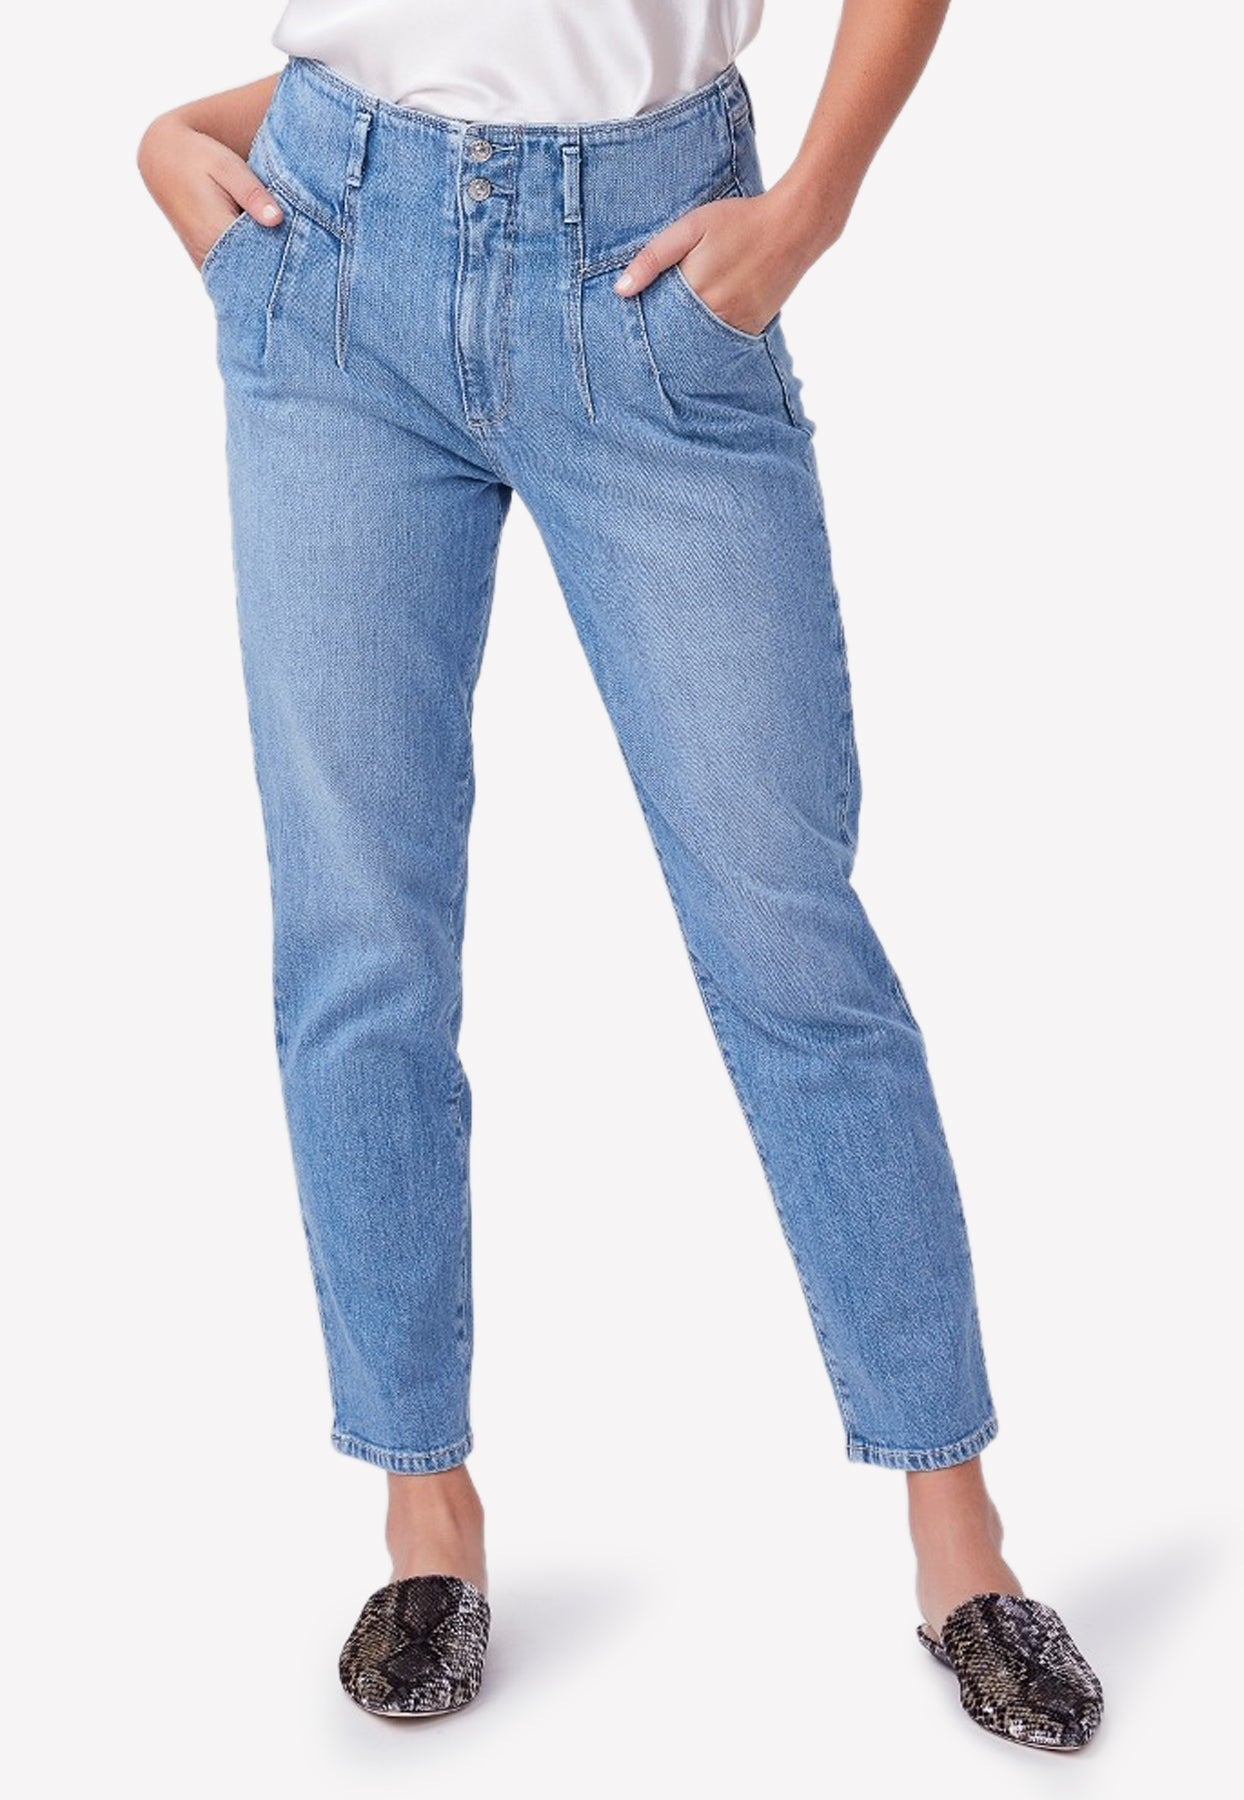 Paige Sarah Straight Ankle Cotton Jeans In Blue